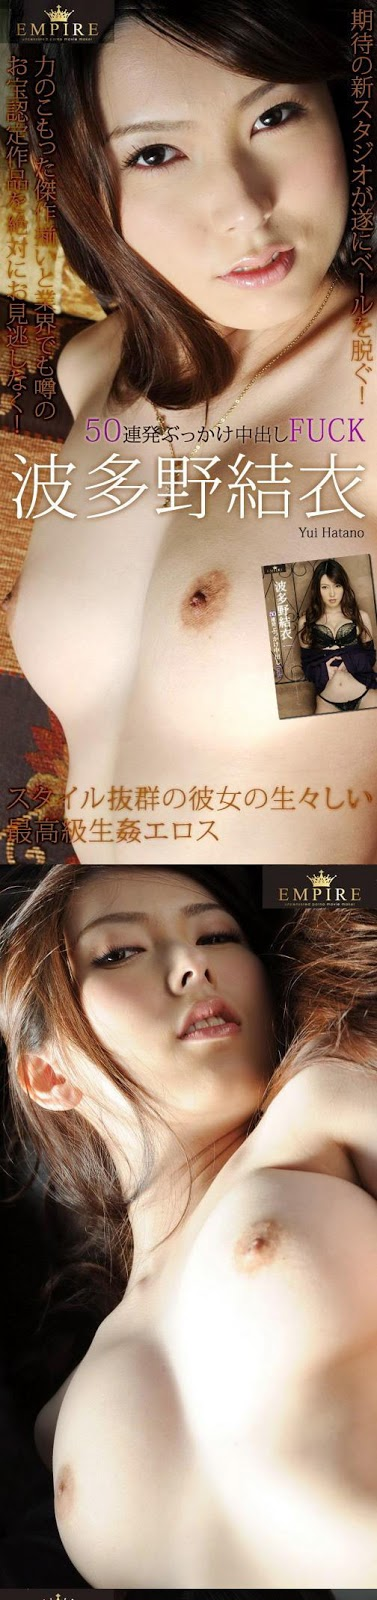 EMPIRE Vol.1 – 50 Bukkake & Creampie : Yui Hatano,Sex-Scandal.Us,Taiwan Cele-brity Sex Scandal, Sex-Scandal.Us, hot sex scandal, nude girls, hot girls, Best Girl, Singapore Scandal, Korean Scandal, Japan Scandal